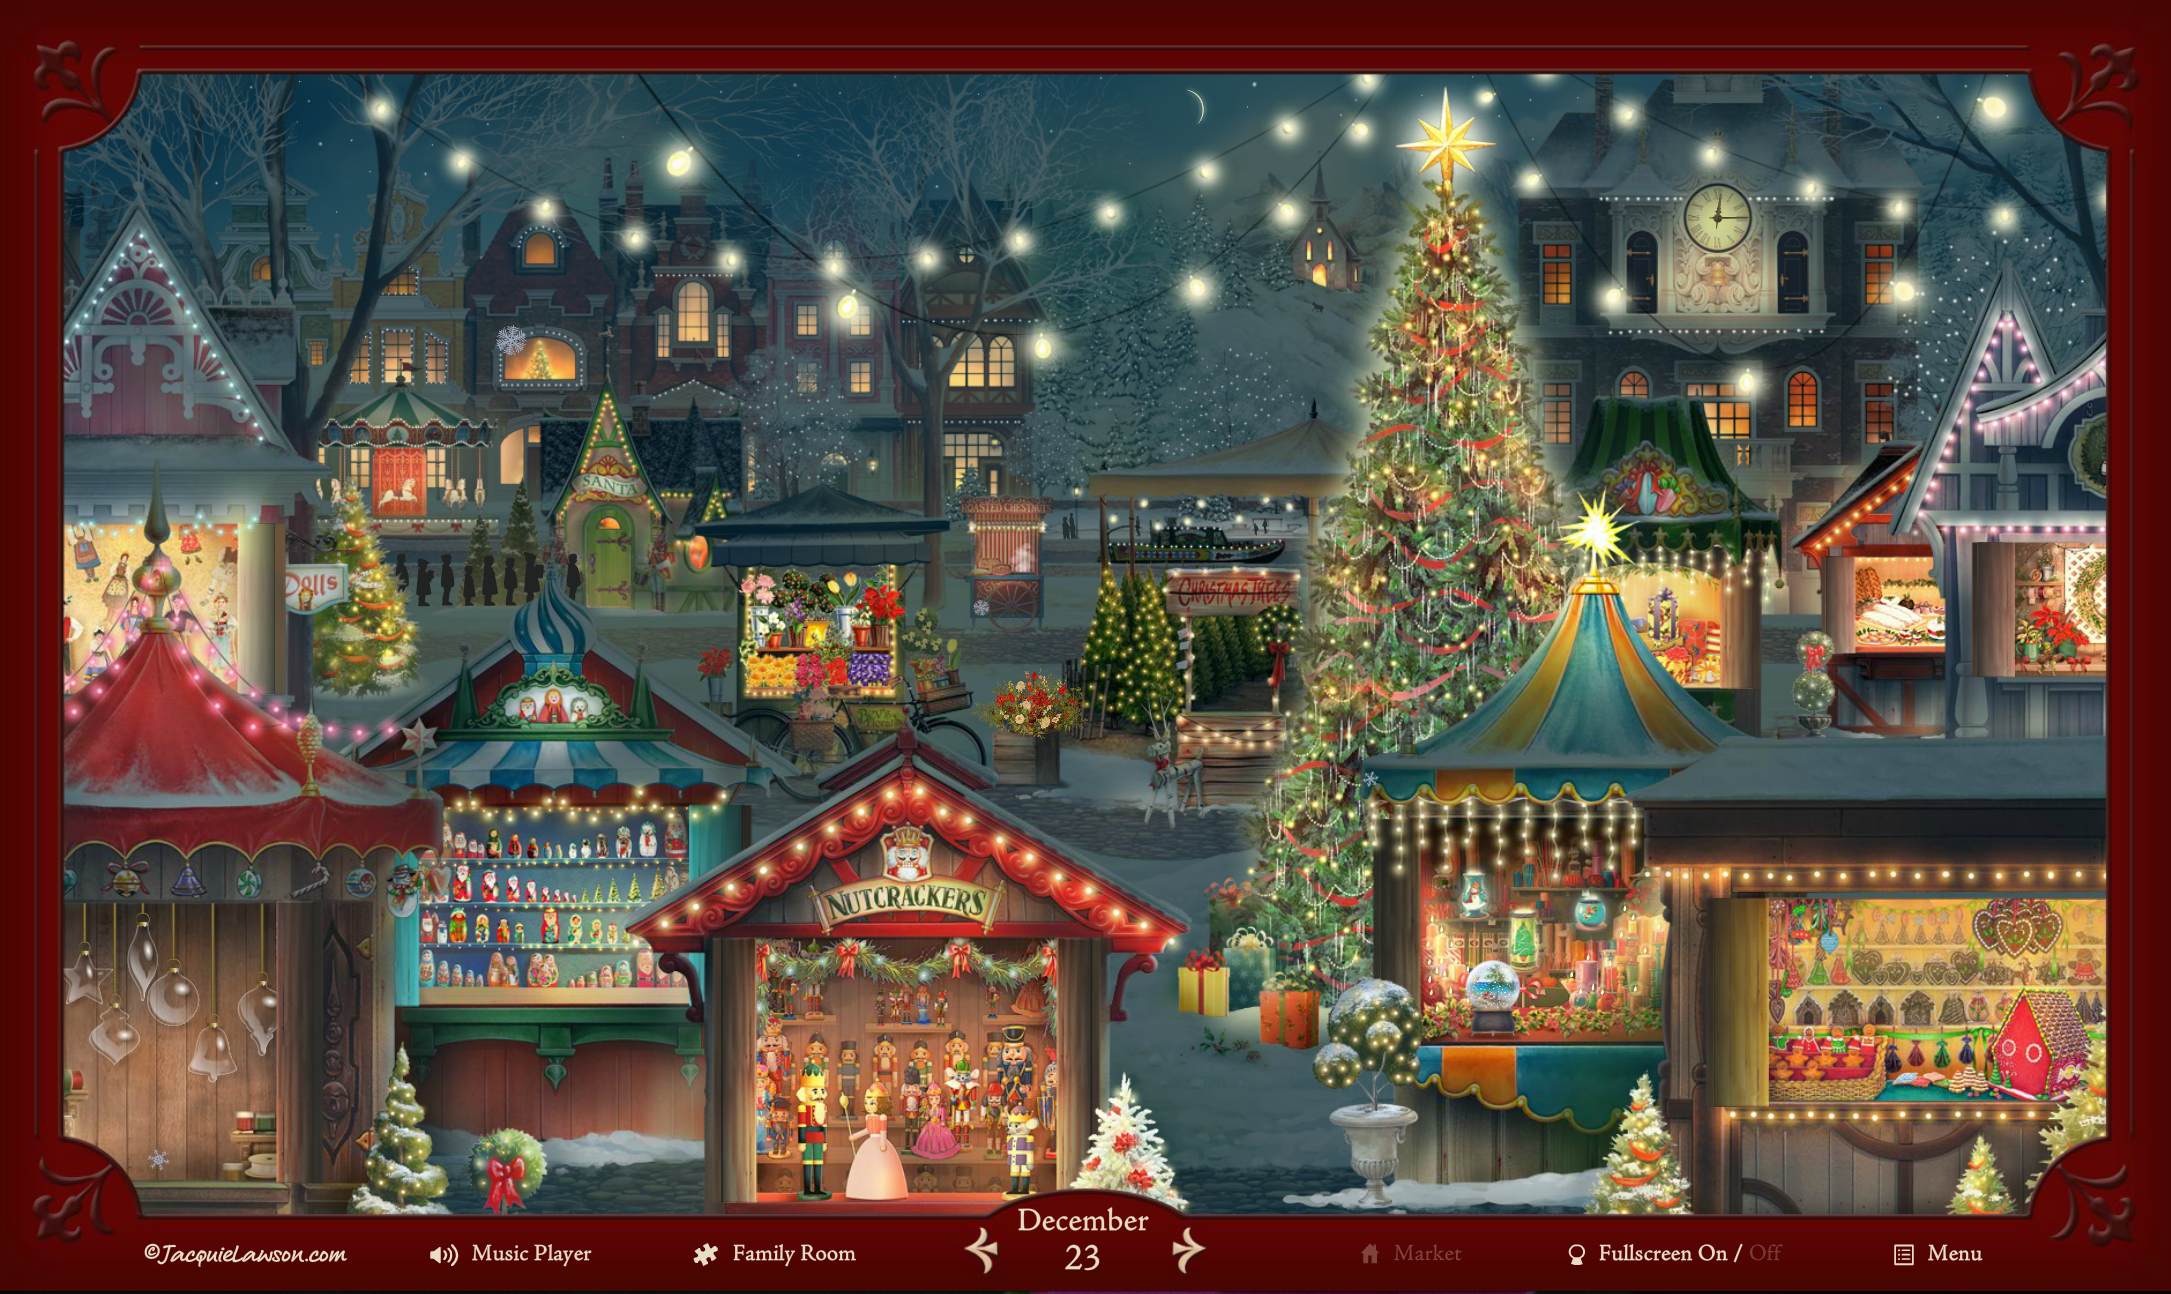 amazoncom jacquie lawson christmas market advent calendar online code software - Jacquie Lawson Halloween Cards